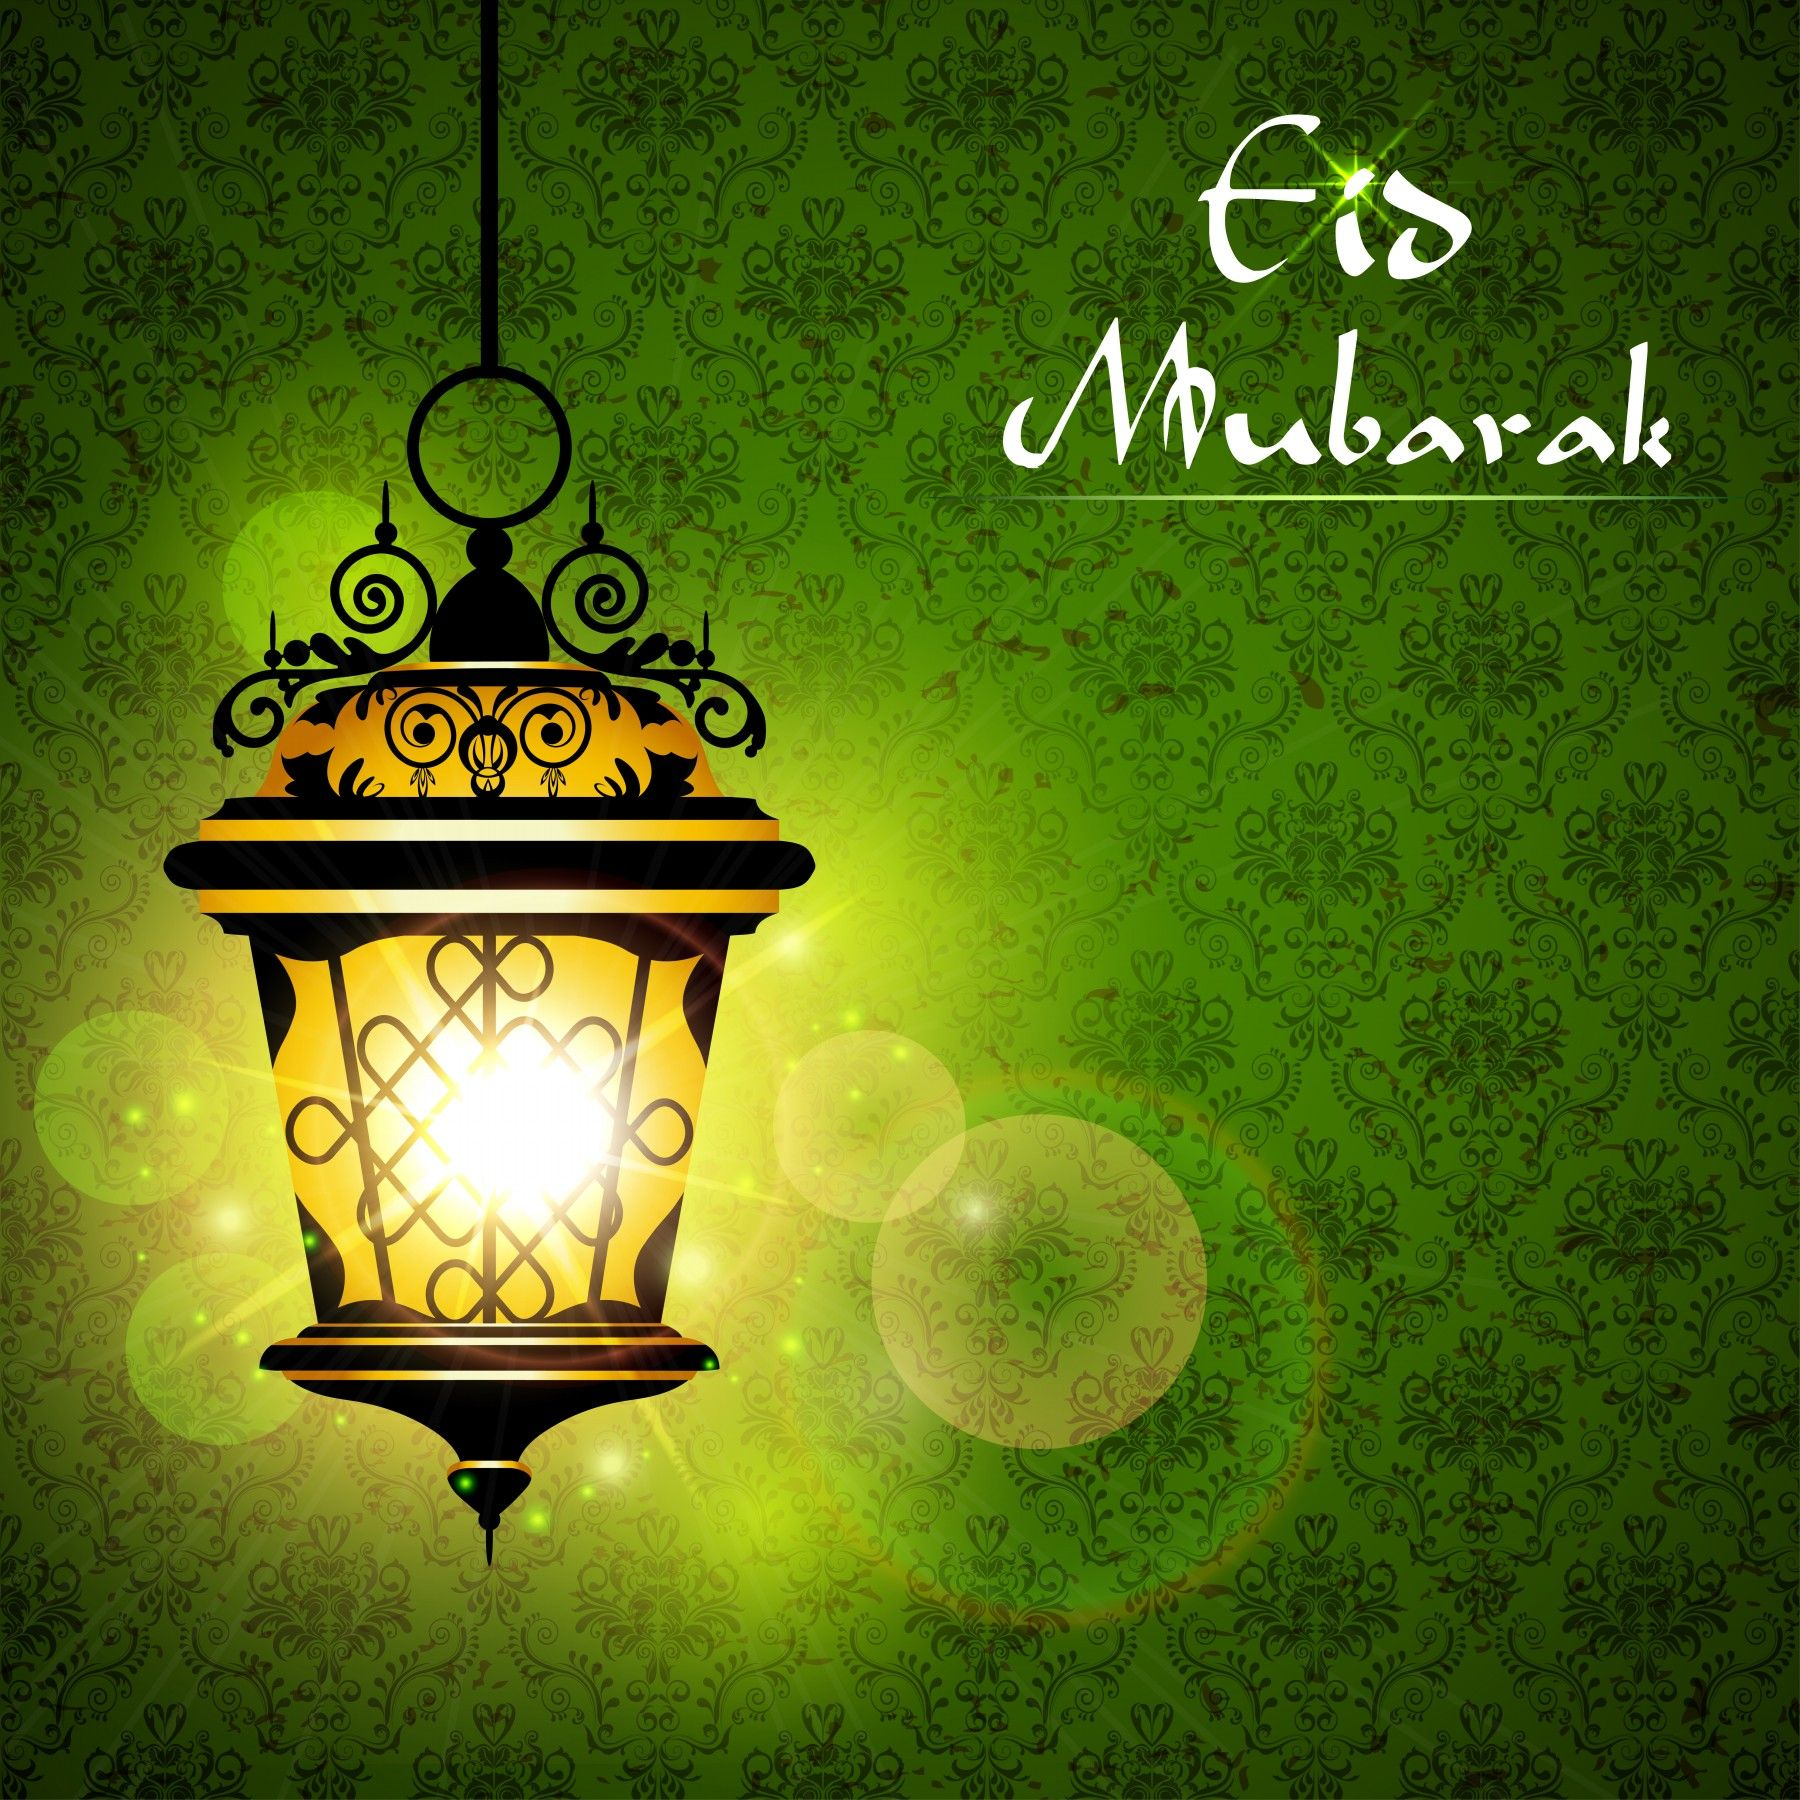 Eid mubarak wallpapers images cards 5g 18001800 greetings eid mubarak wallpapers images cards 5g 1800 kristyandbryce Image collections